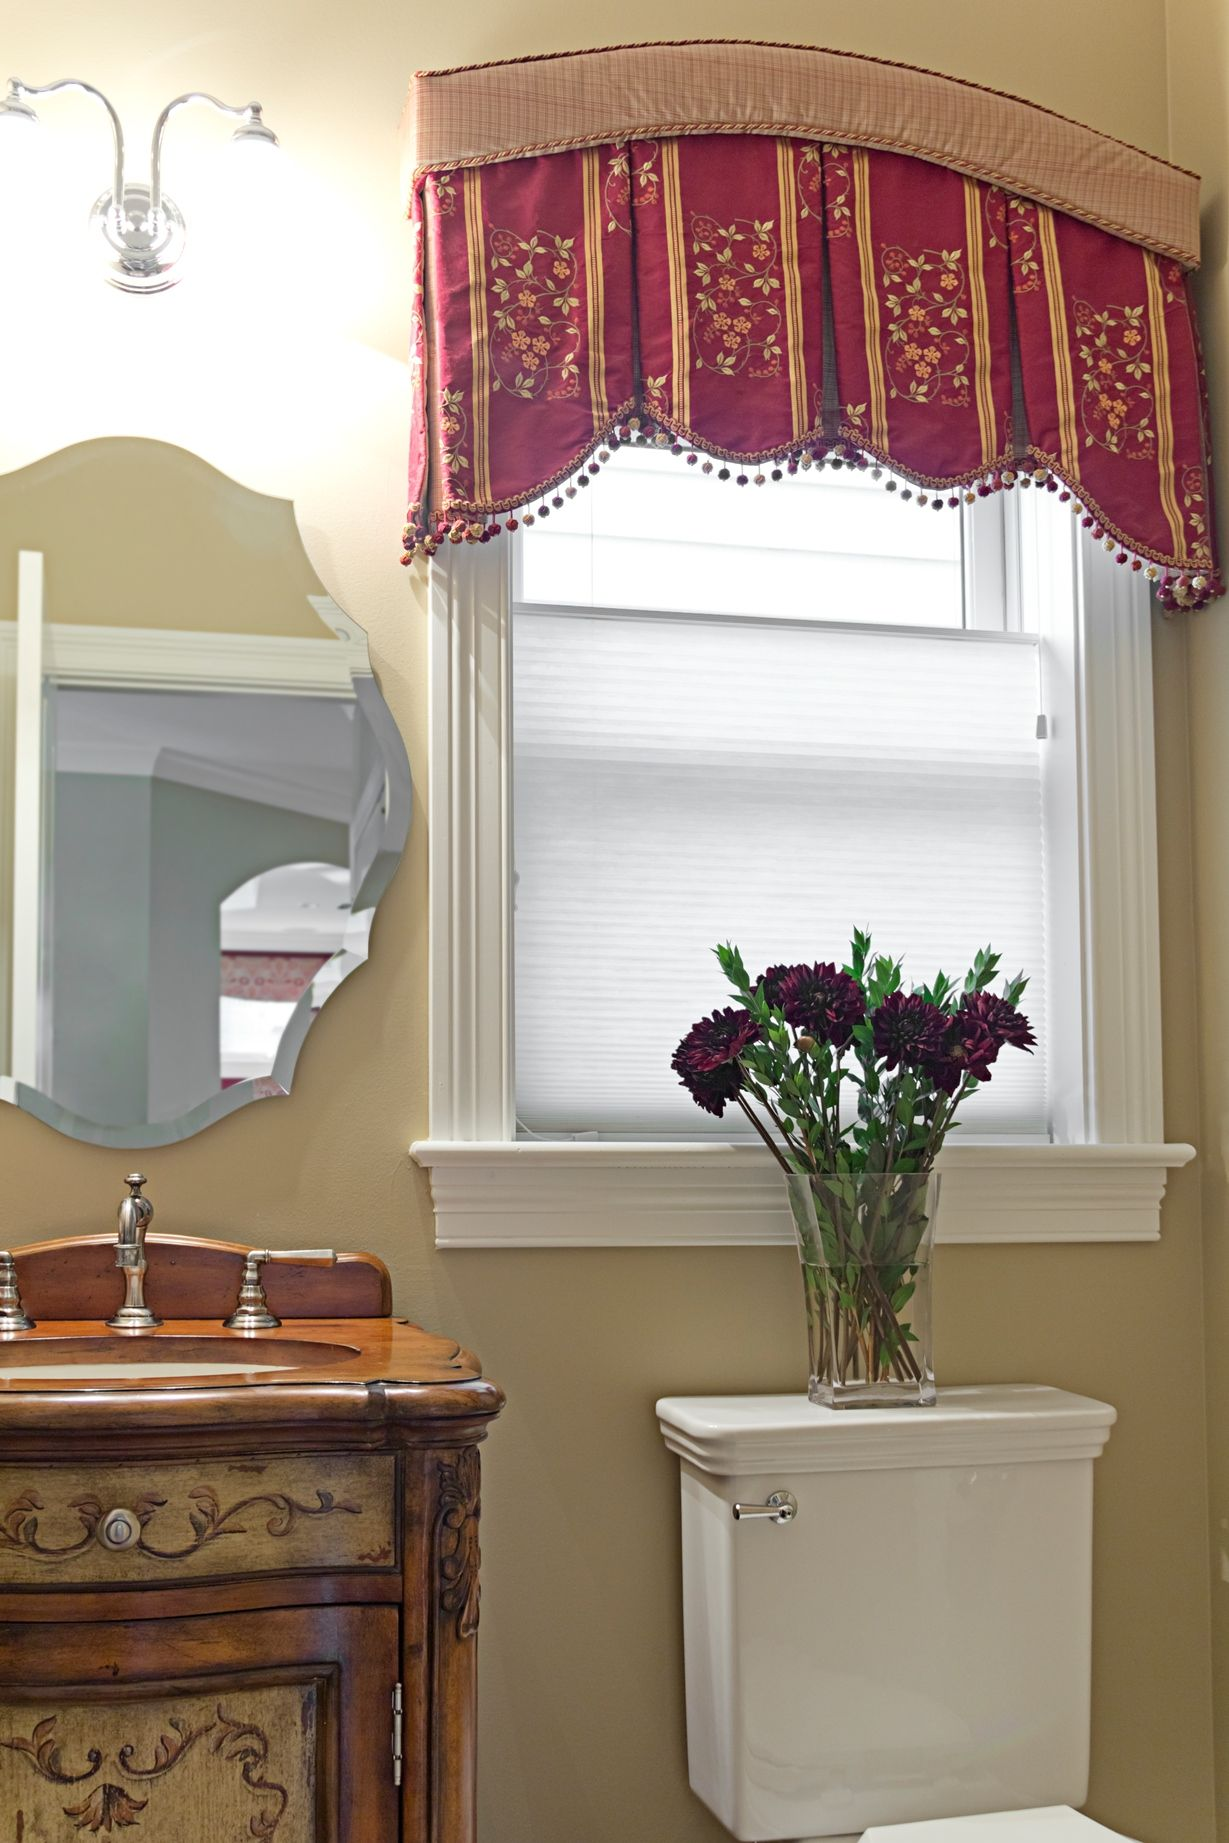 Very Unusual Box Pleated Valance With An Arched Cornice Top The Pleats Work Well With The